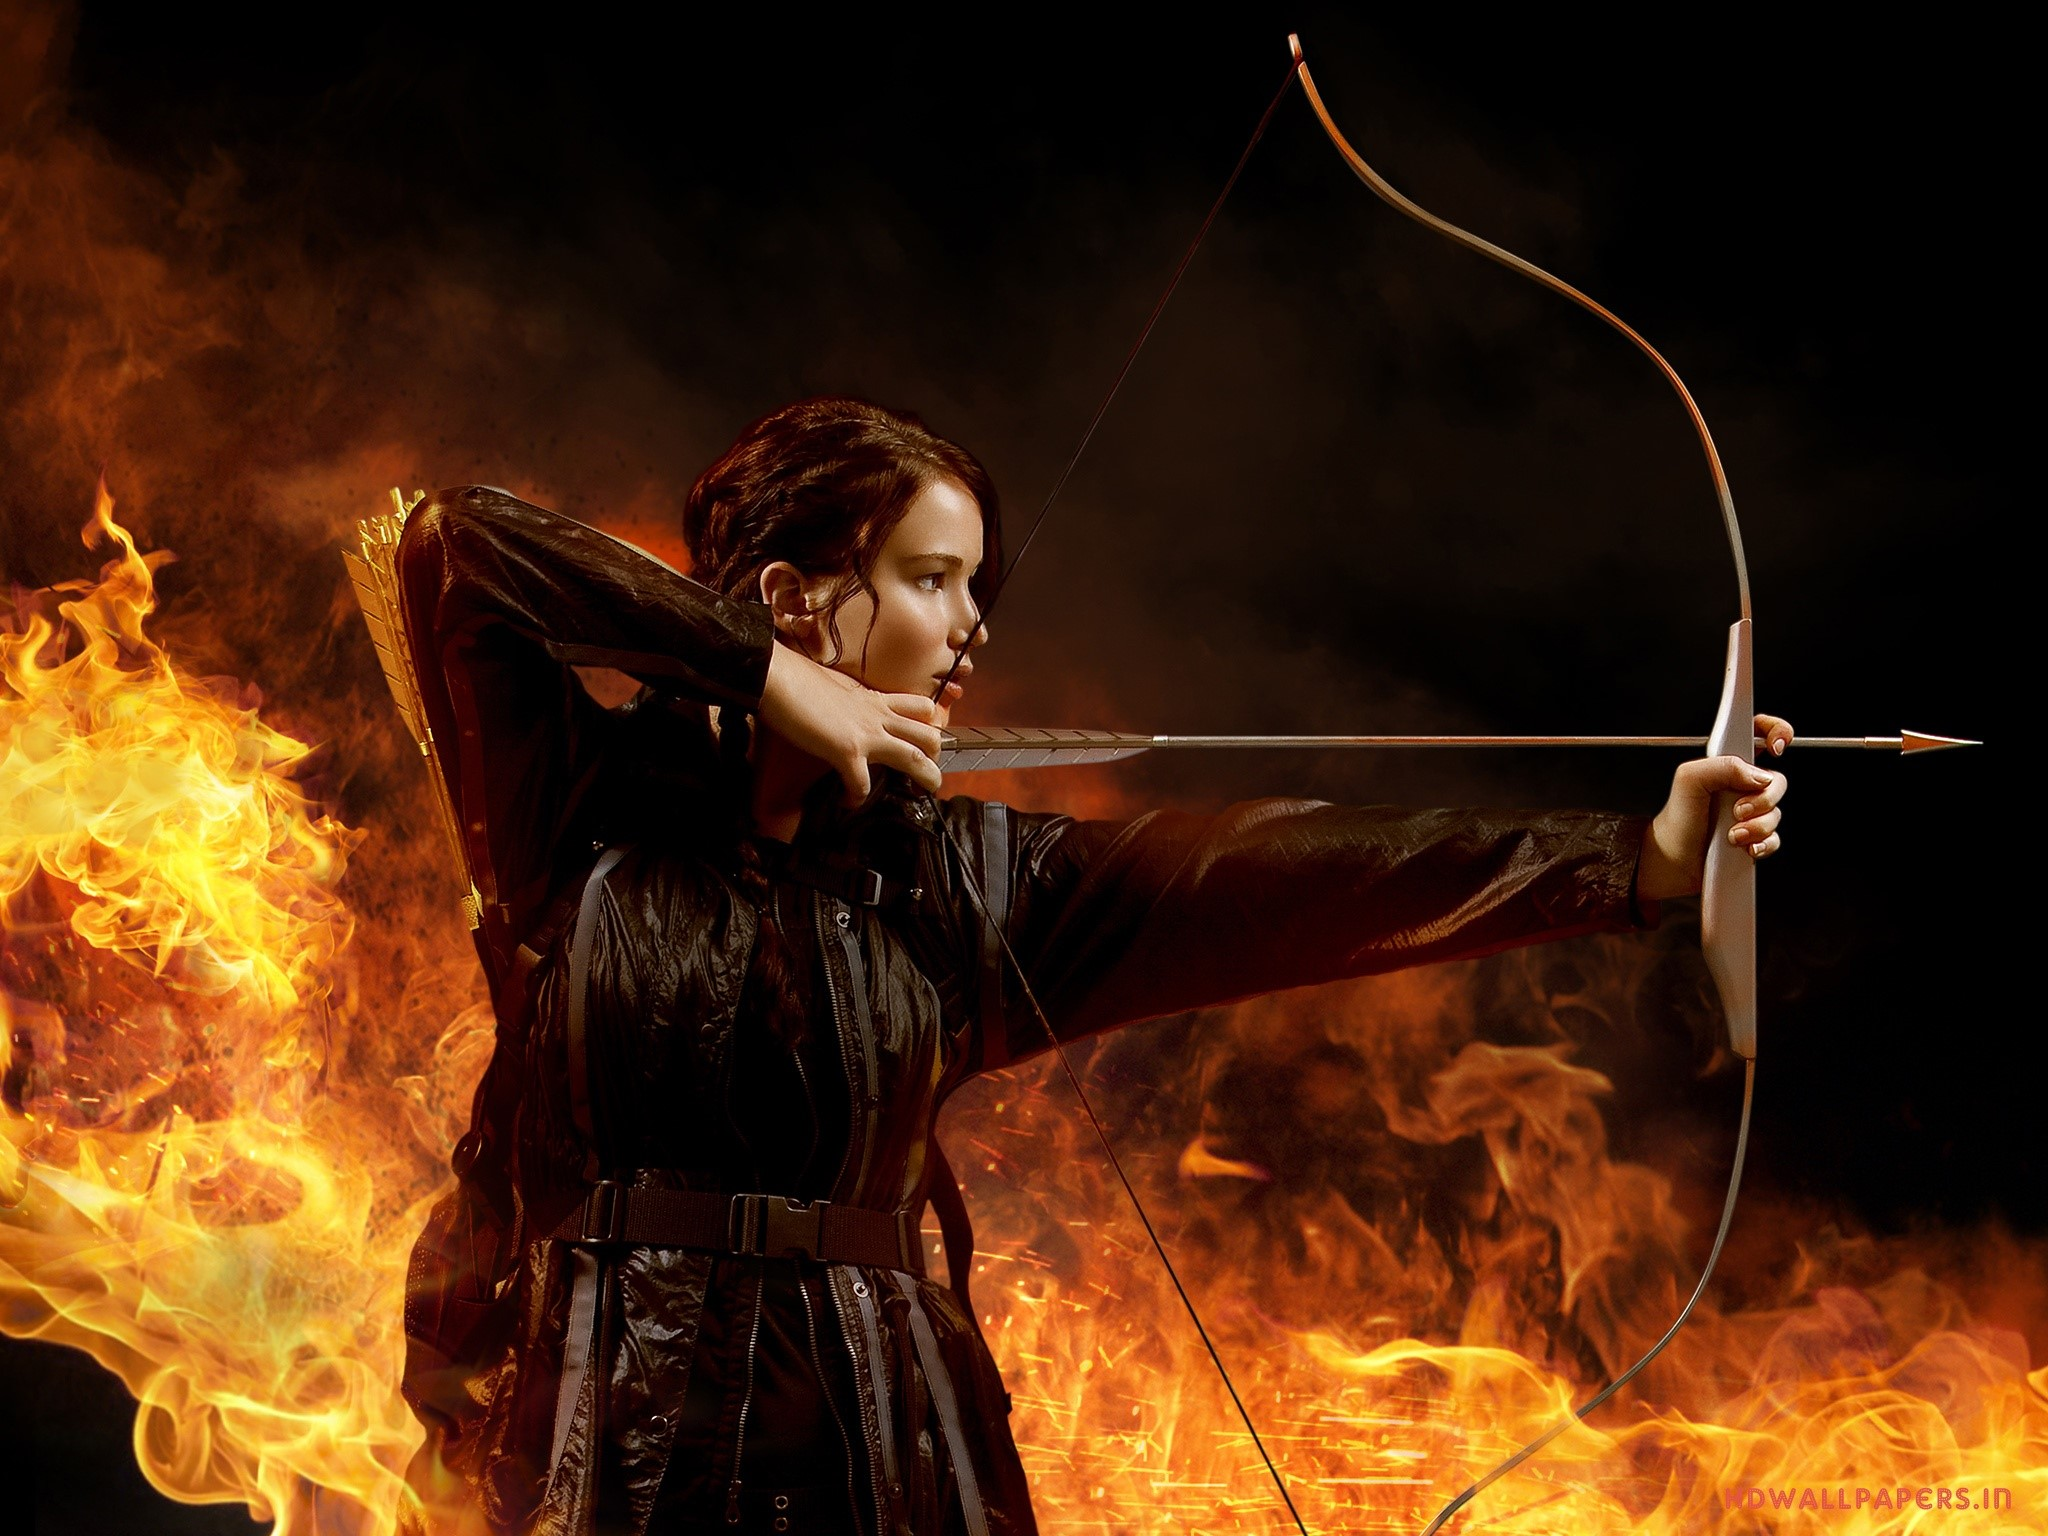 Jennifer Lawrence In The Hunger Games Wallpaper Id 1201